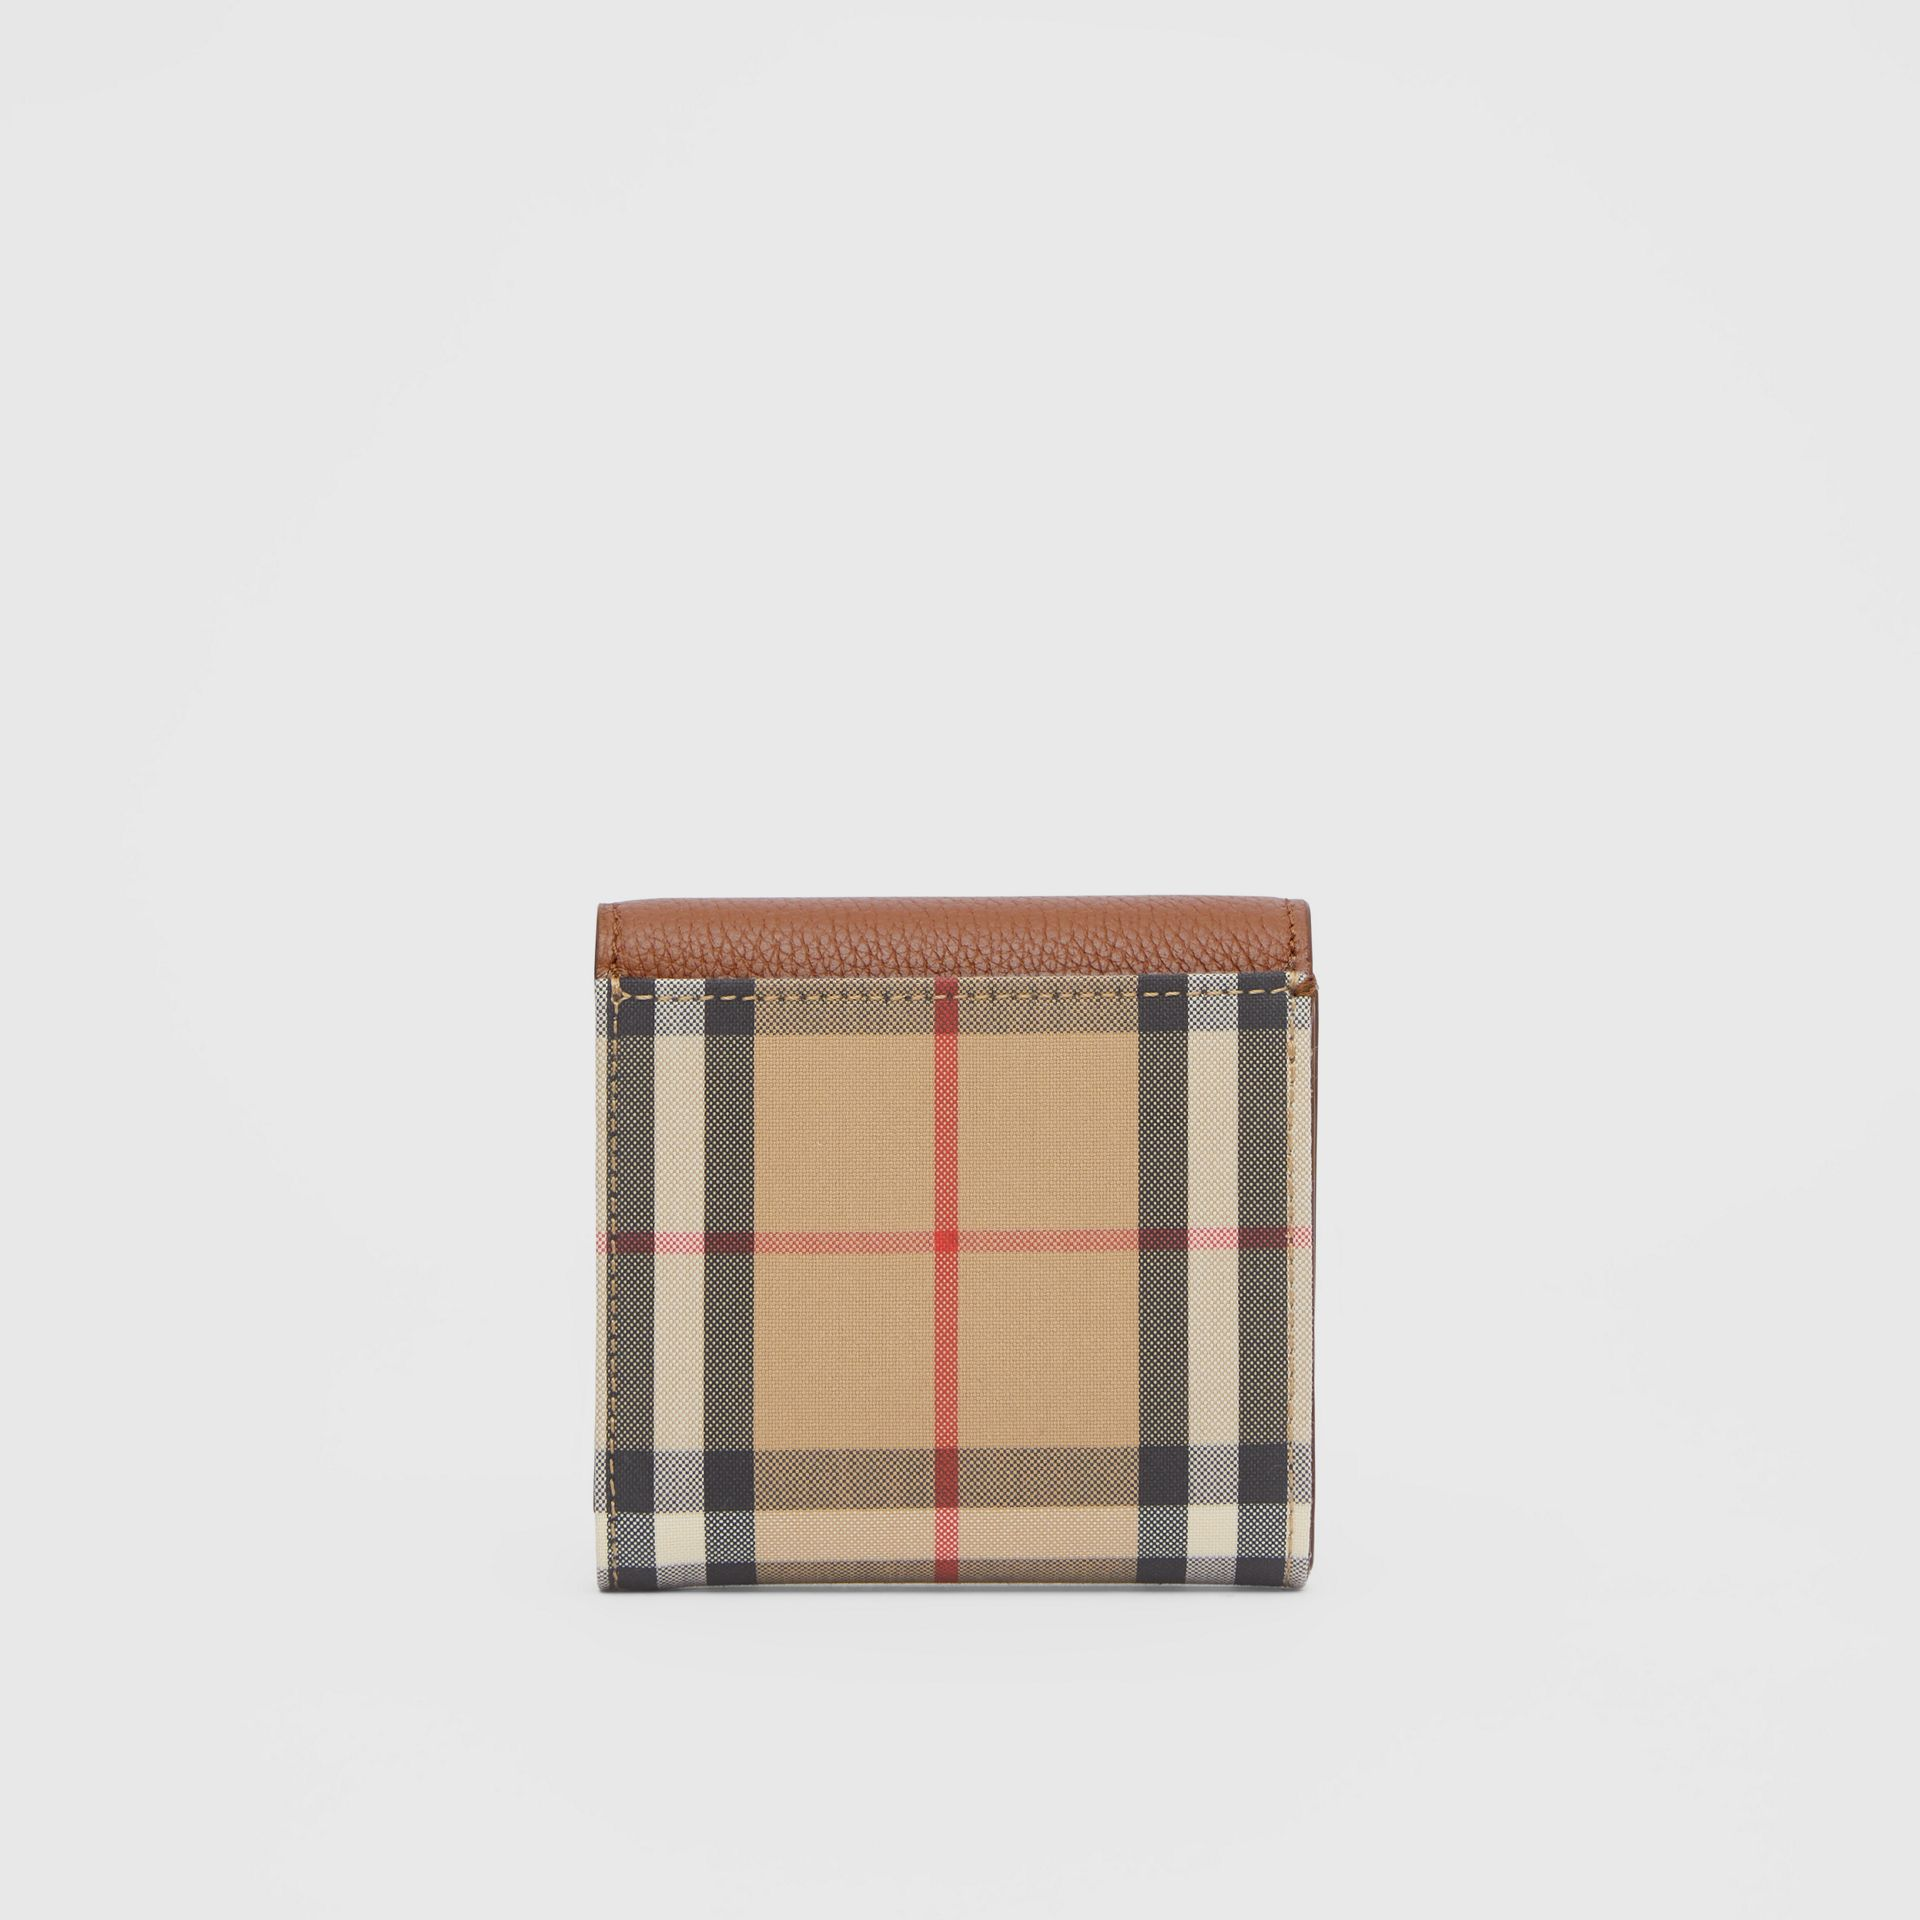 Vintage Check and Grainy Leather Folding Wallet in Tan - Women | Burberry - gallery image 4